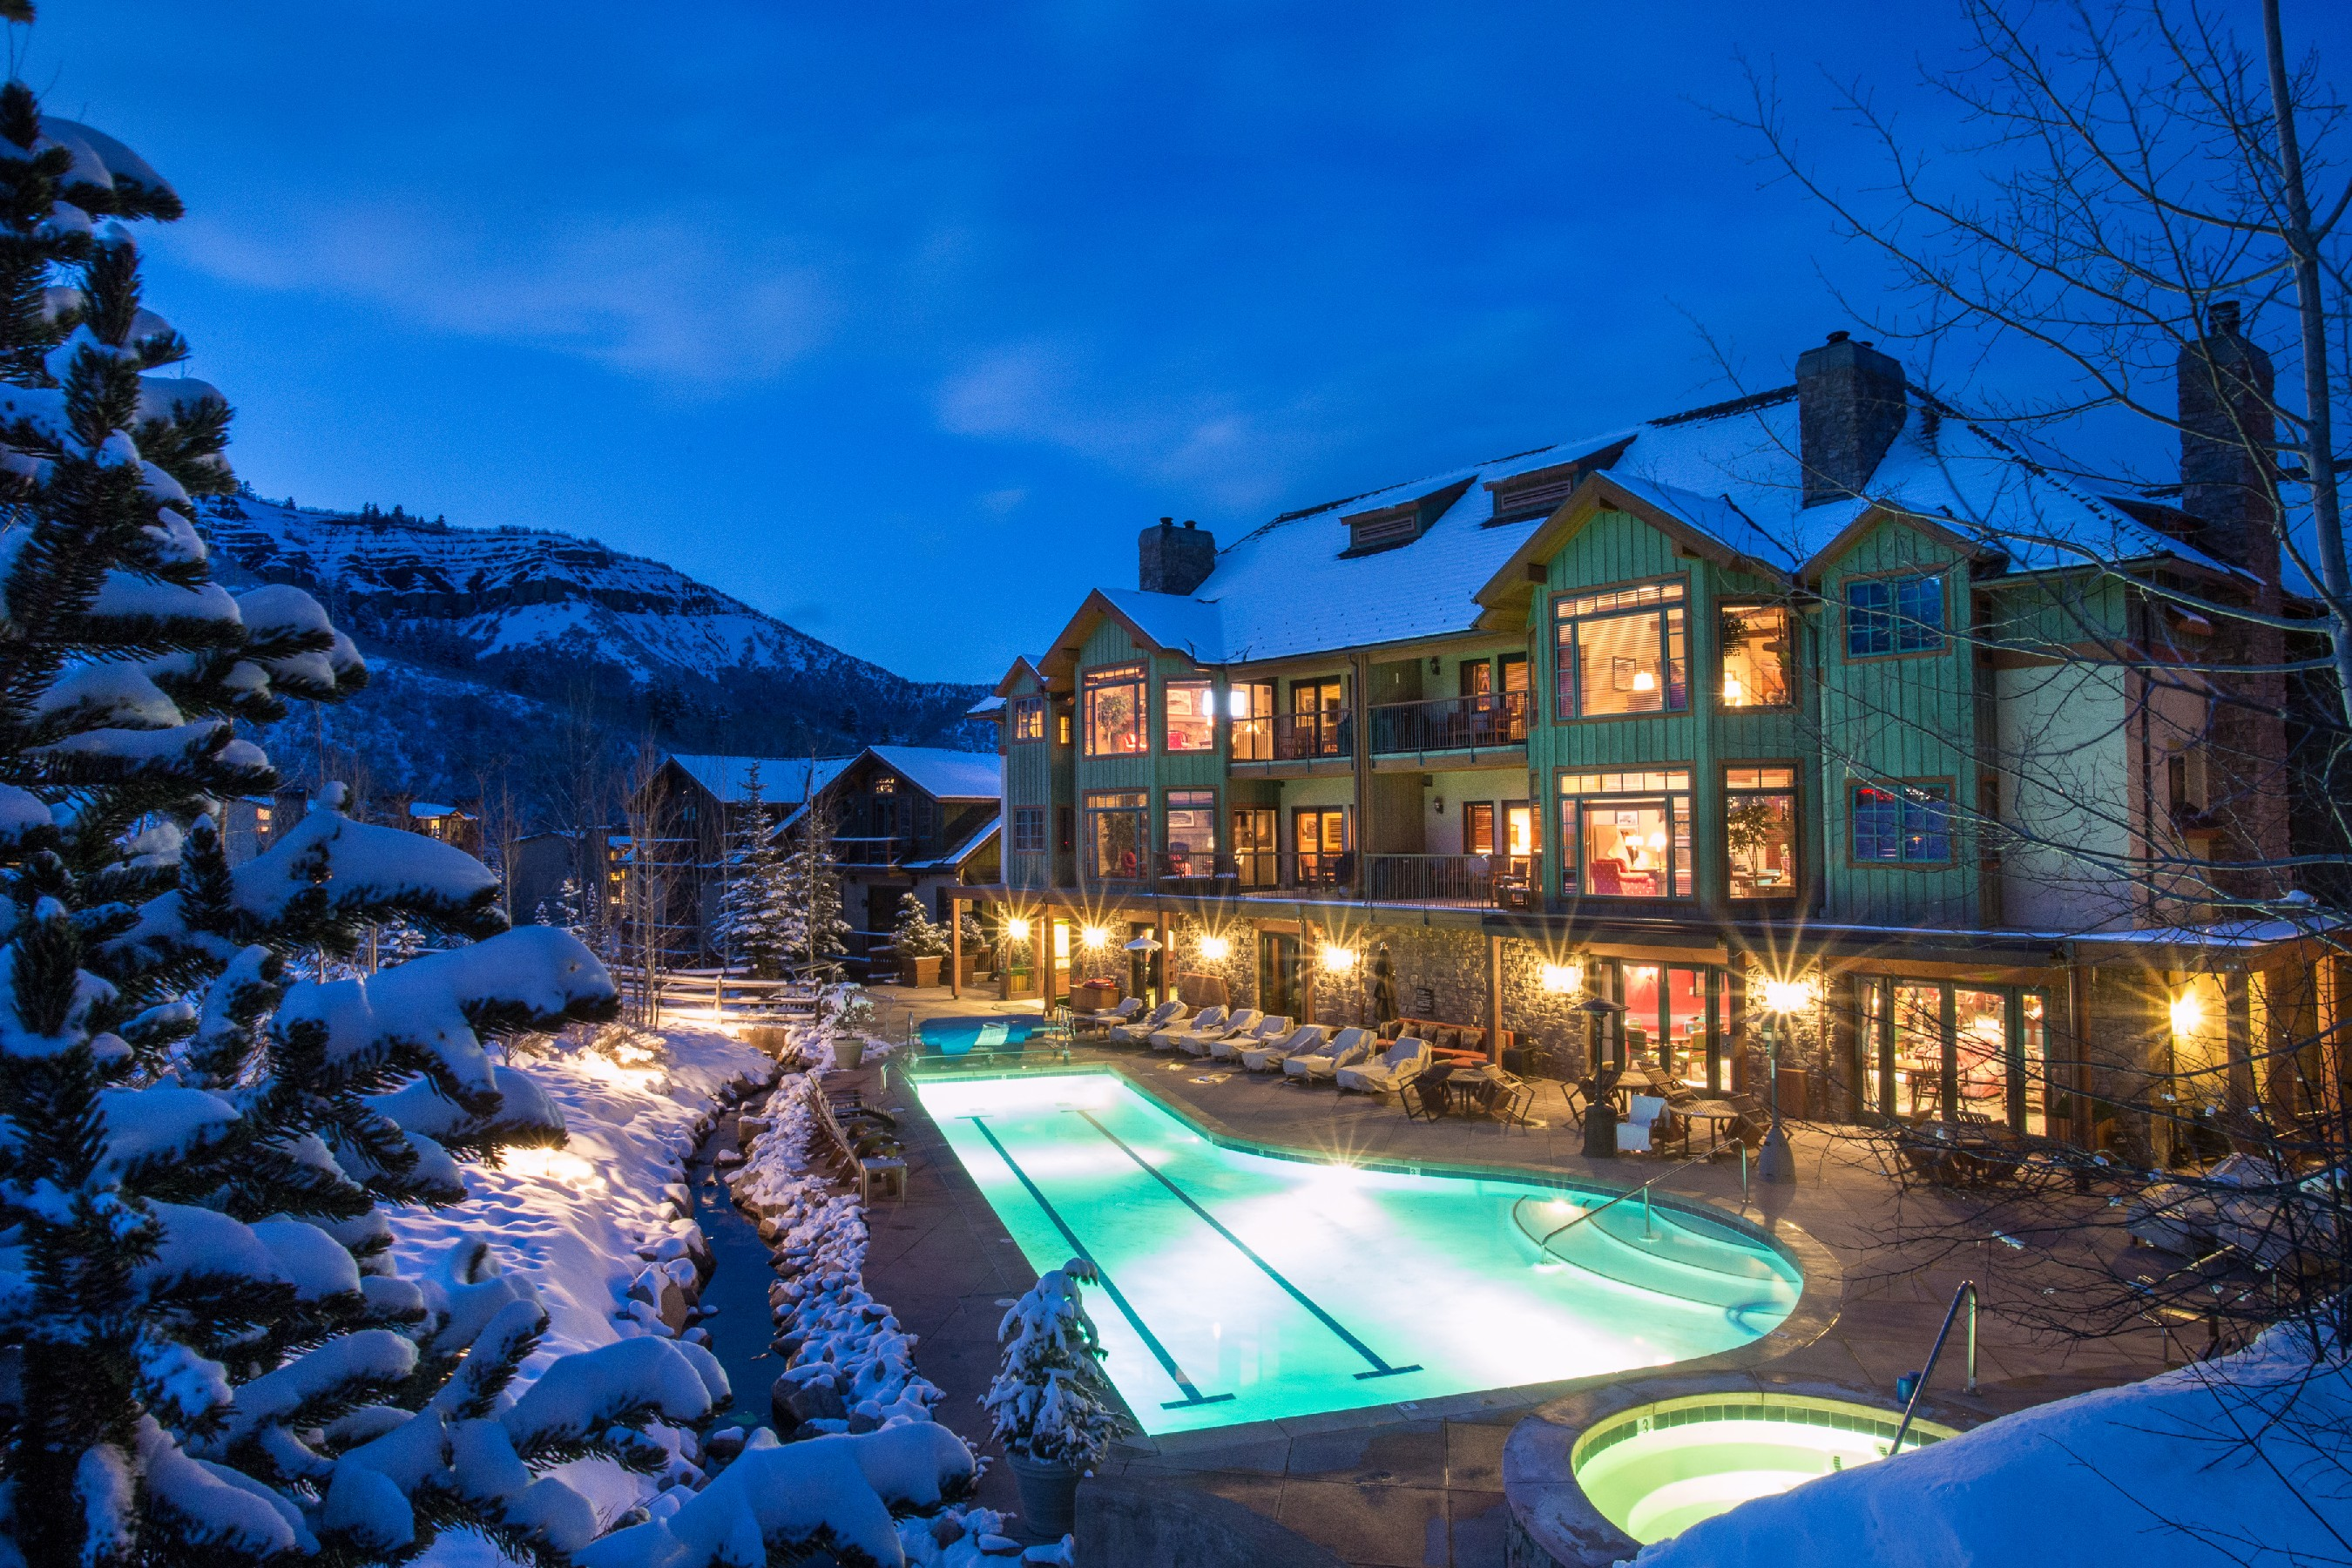 065 Timbers Club Court A7-V Snowmass Village Photo